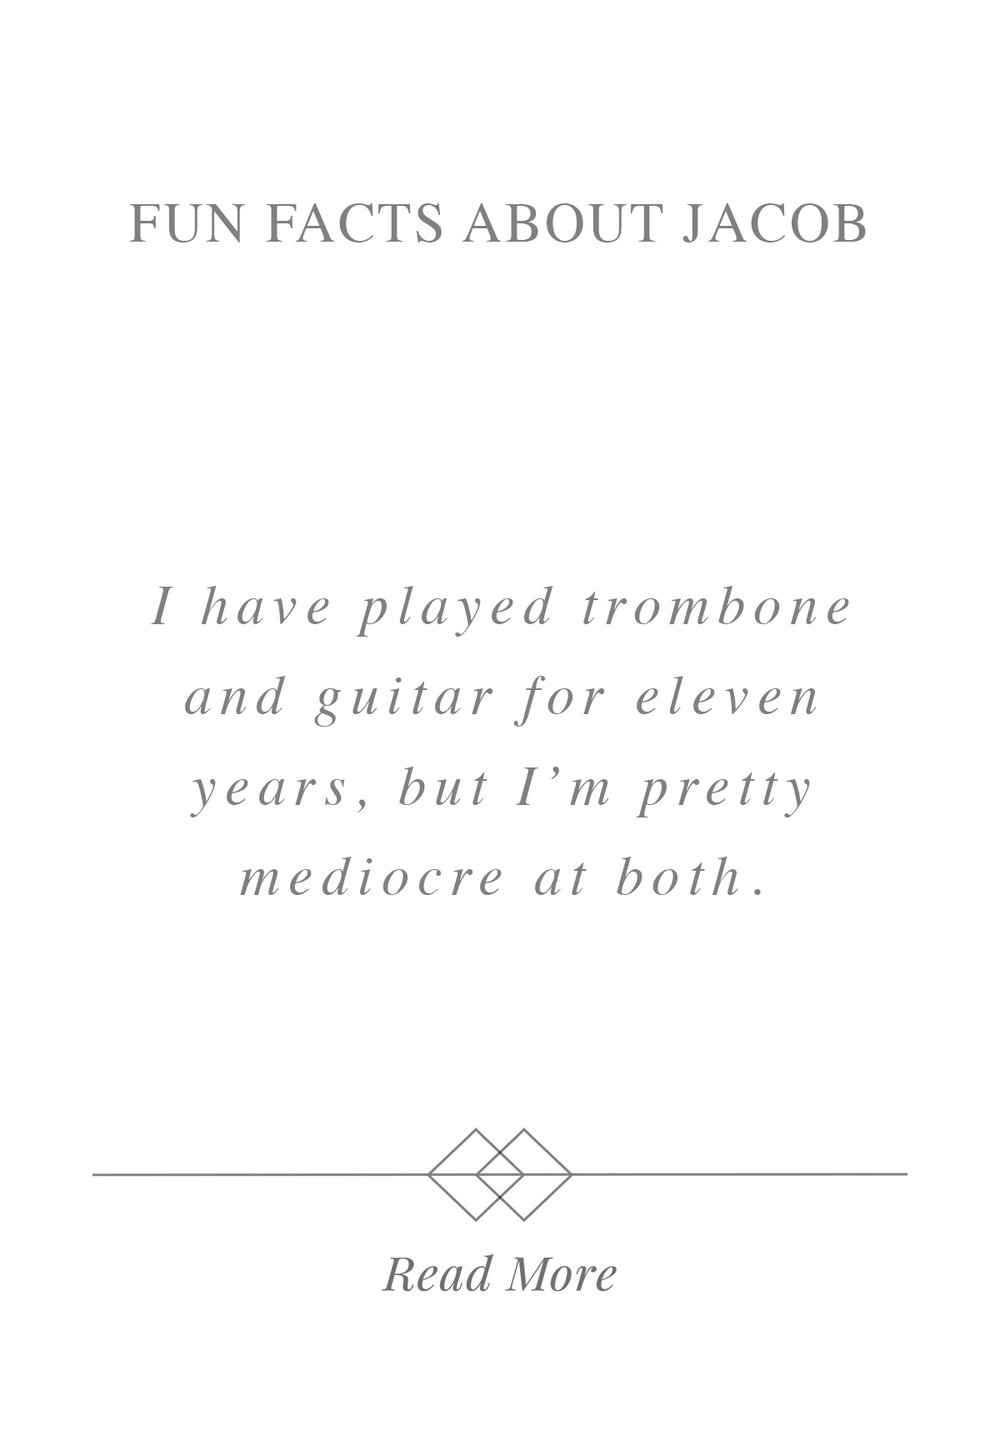 fun facts JACOB2.jpg